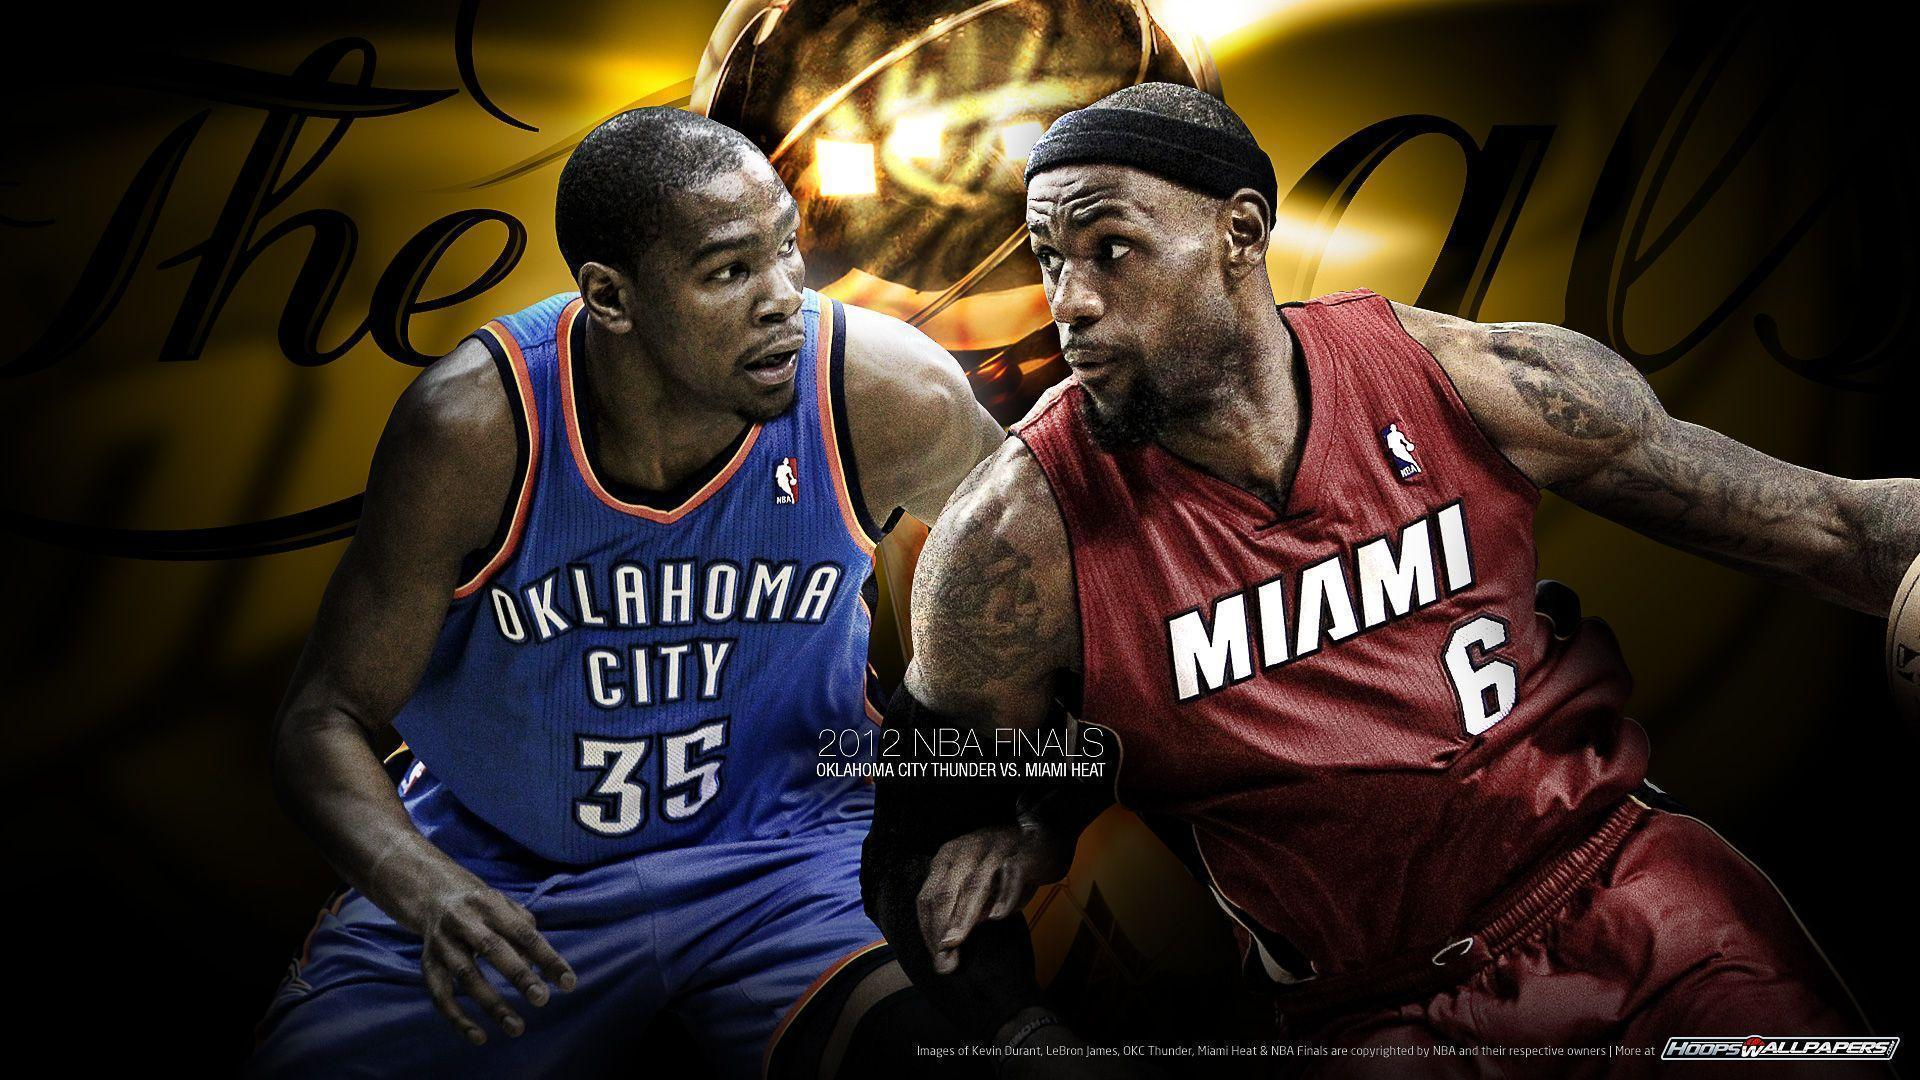 1000+ images about NBA WALLPAPERS on Pinterest | Logos, Artworks ...